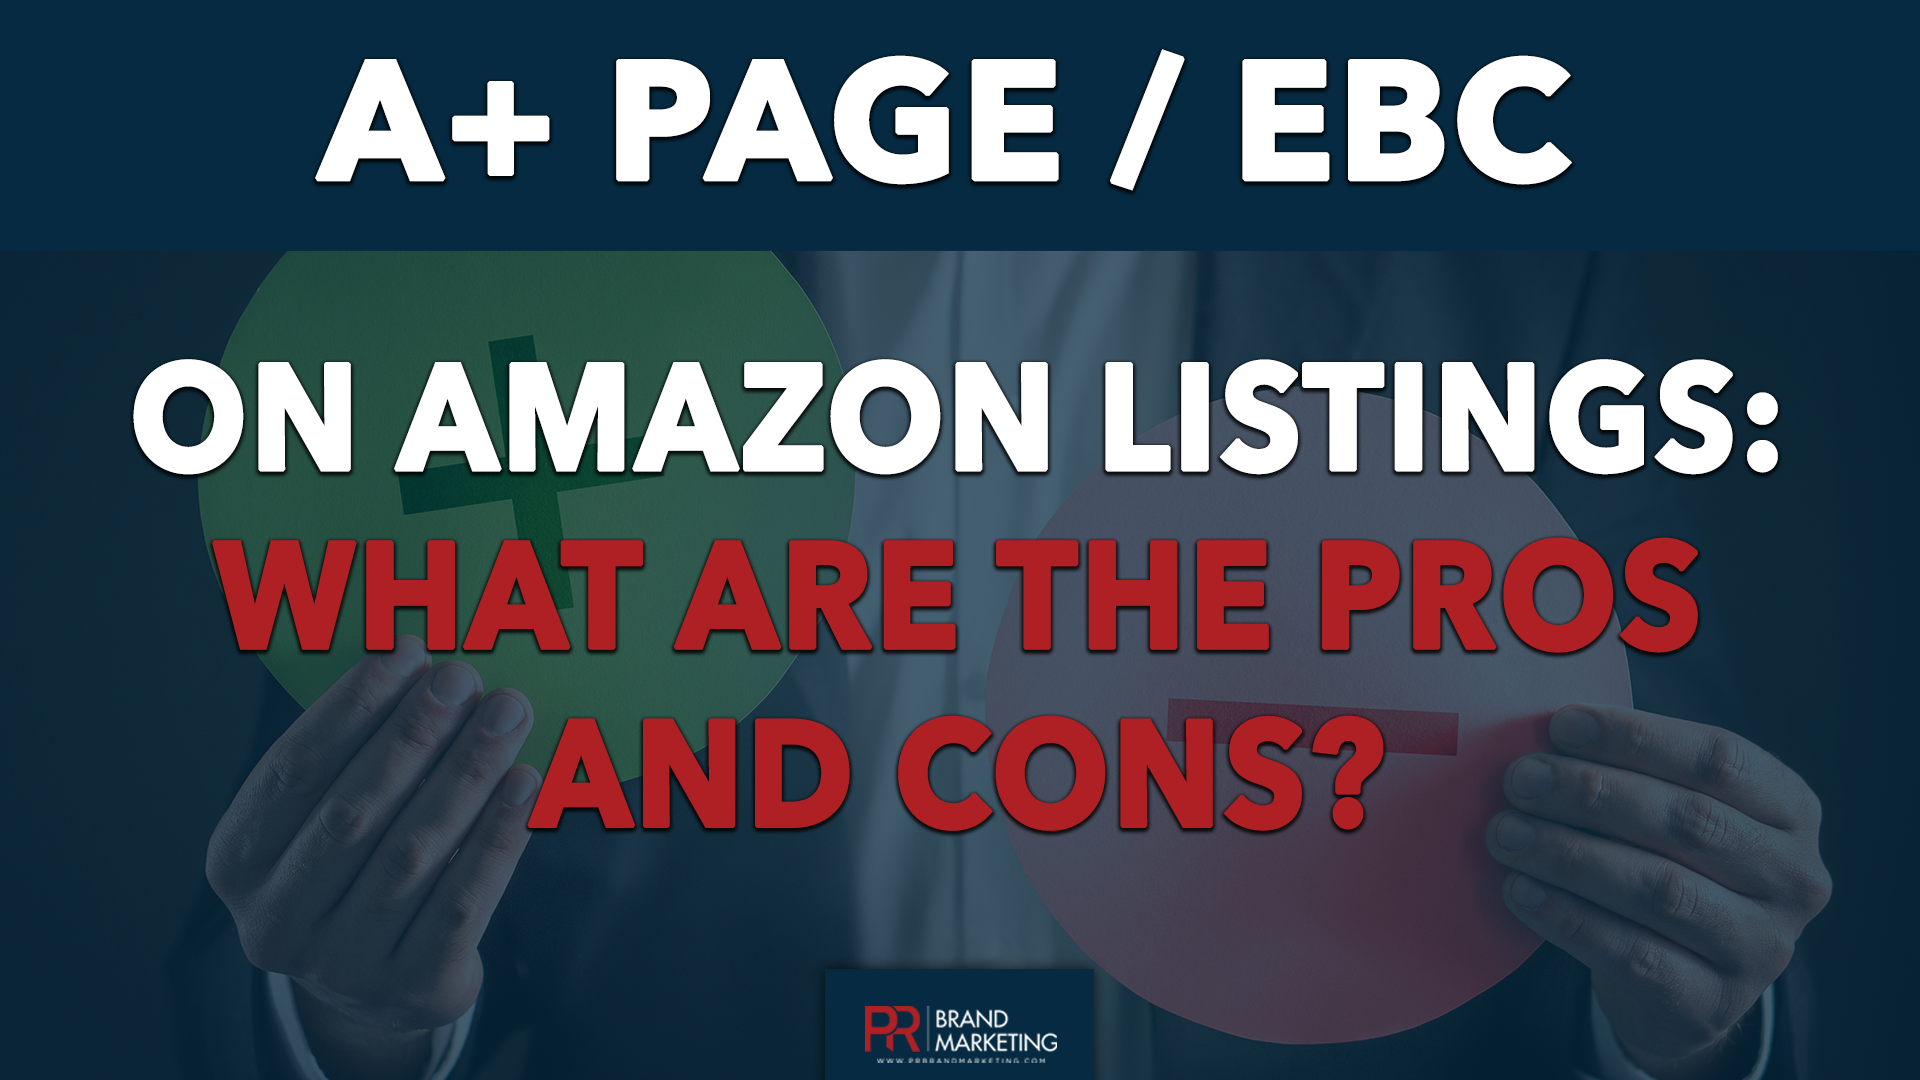 List of the Pros and Cons of Adding an A+ Page / EBC